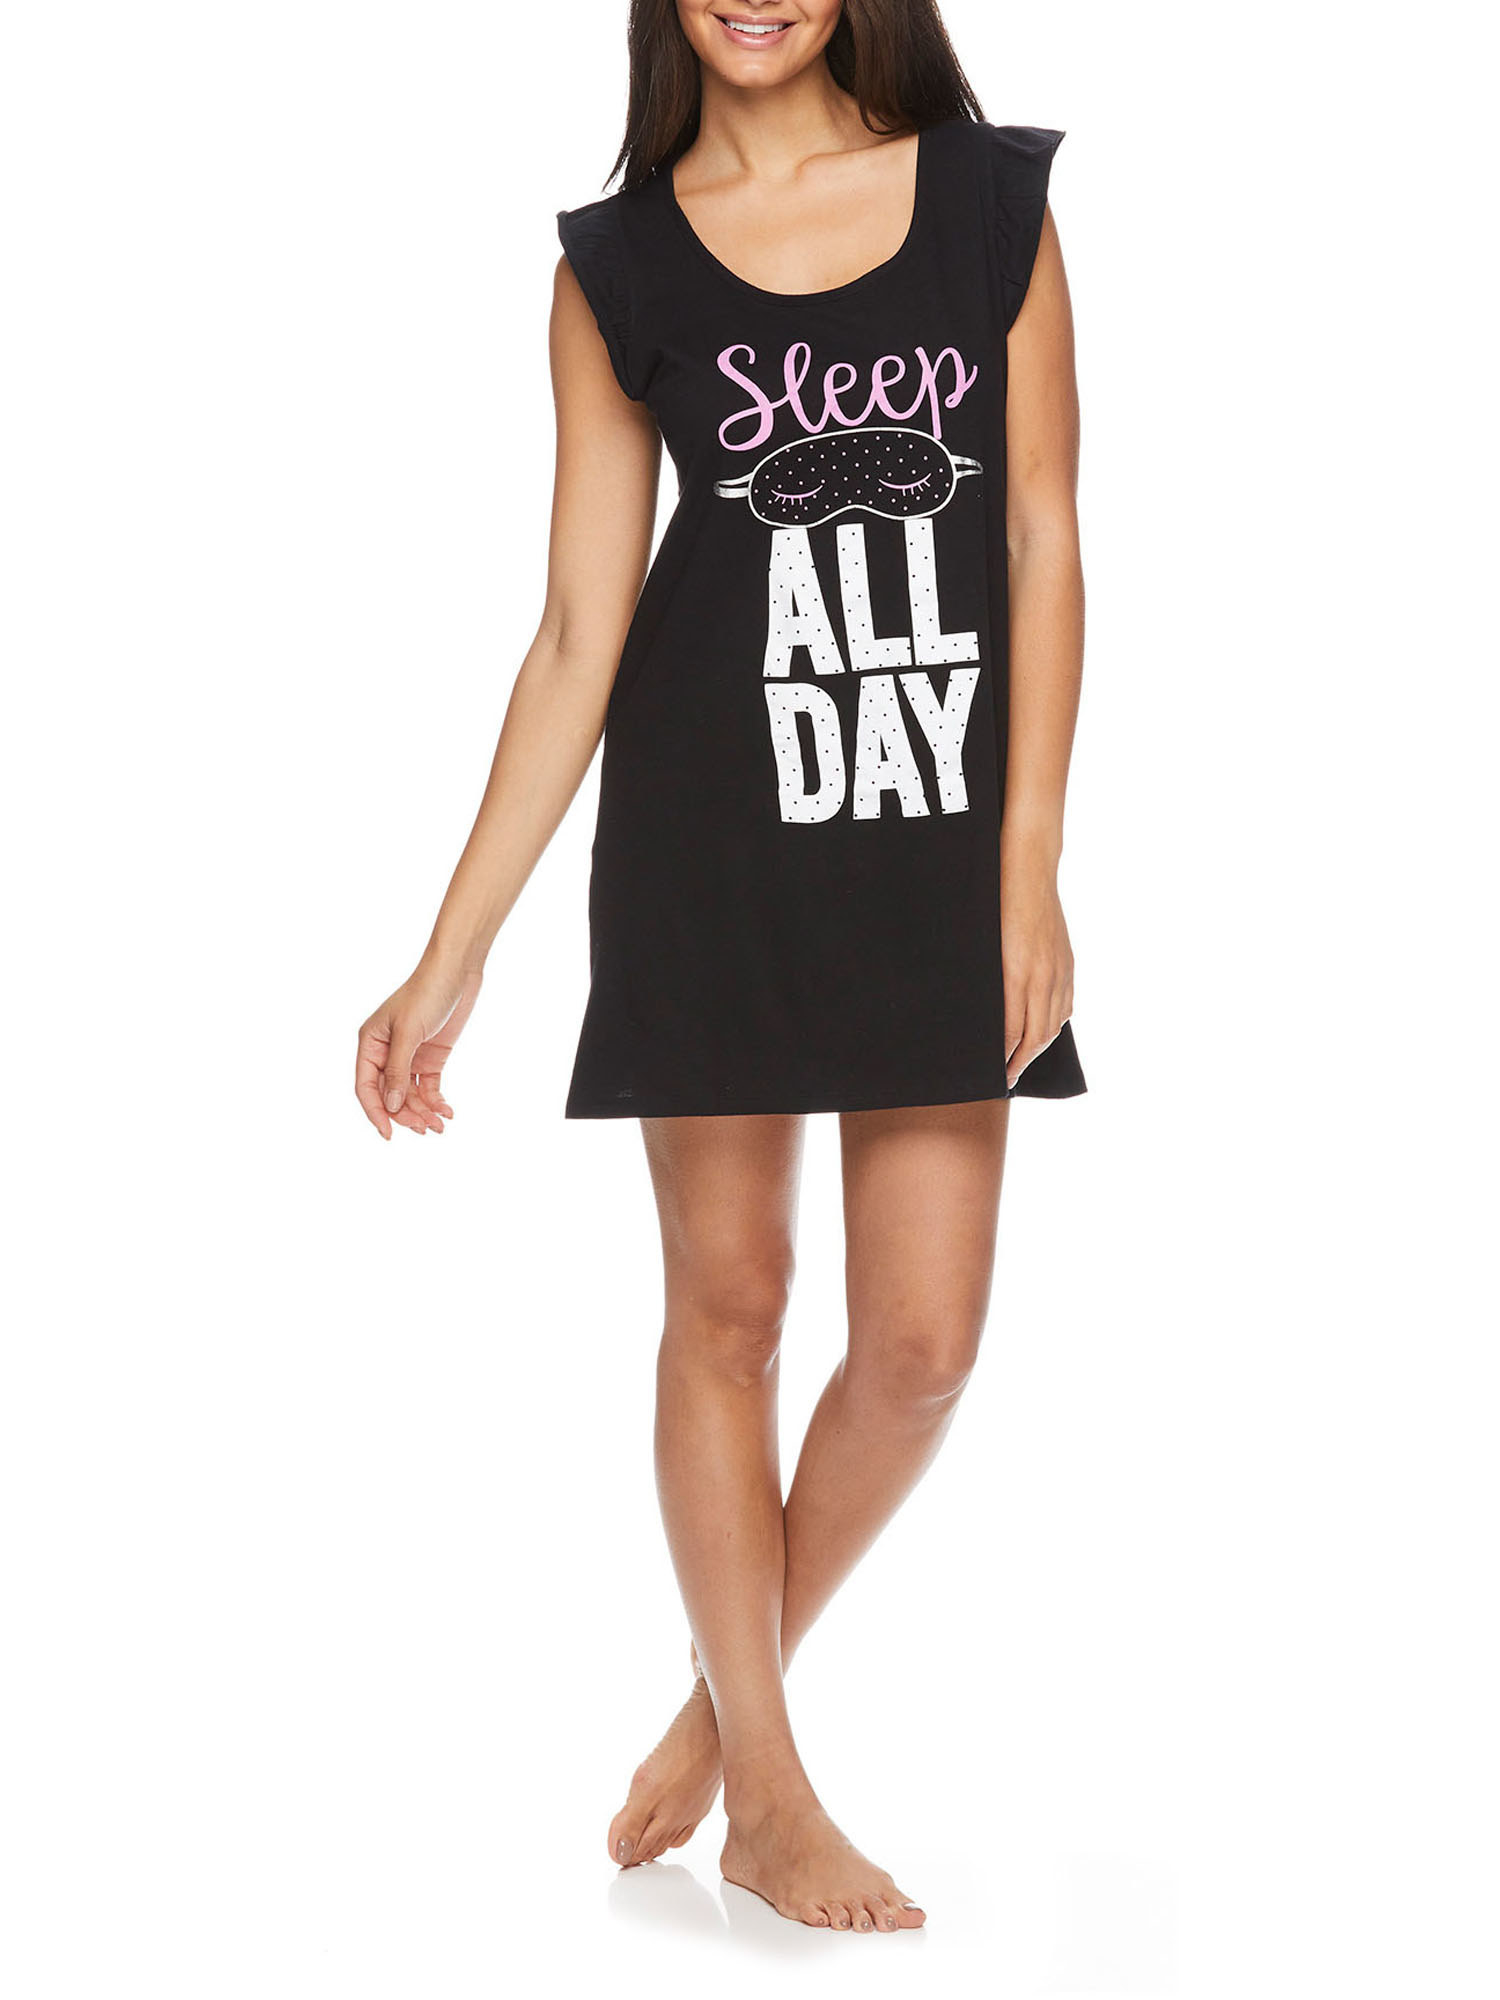 """A model in a black nightgown that says """"Sleep all day"""""""